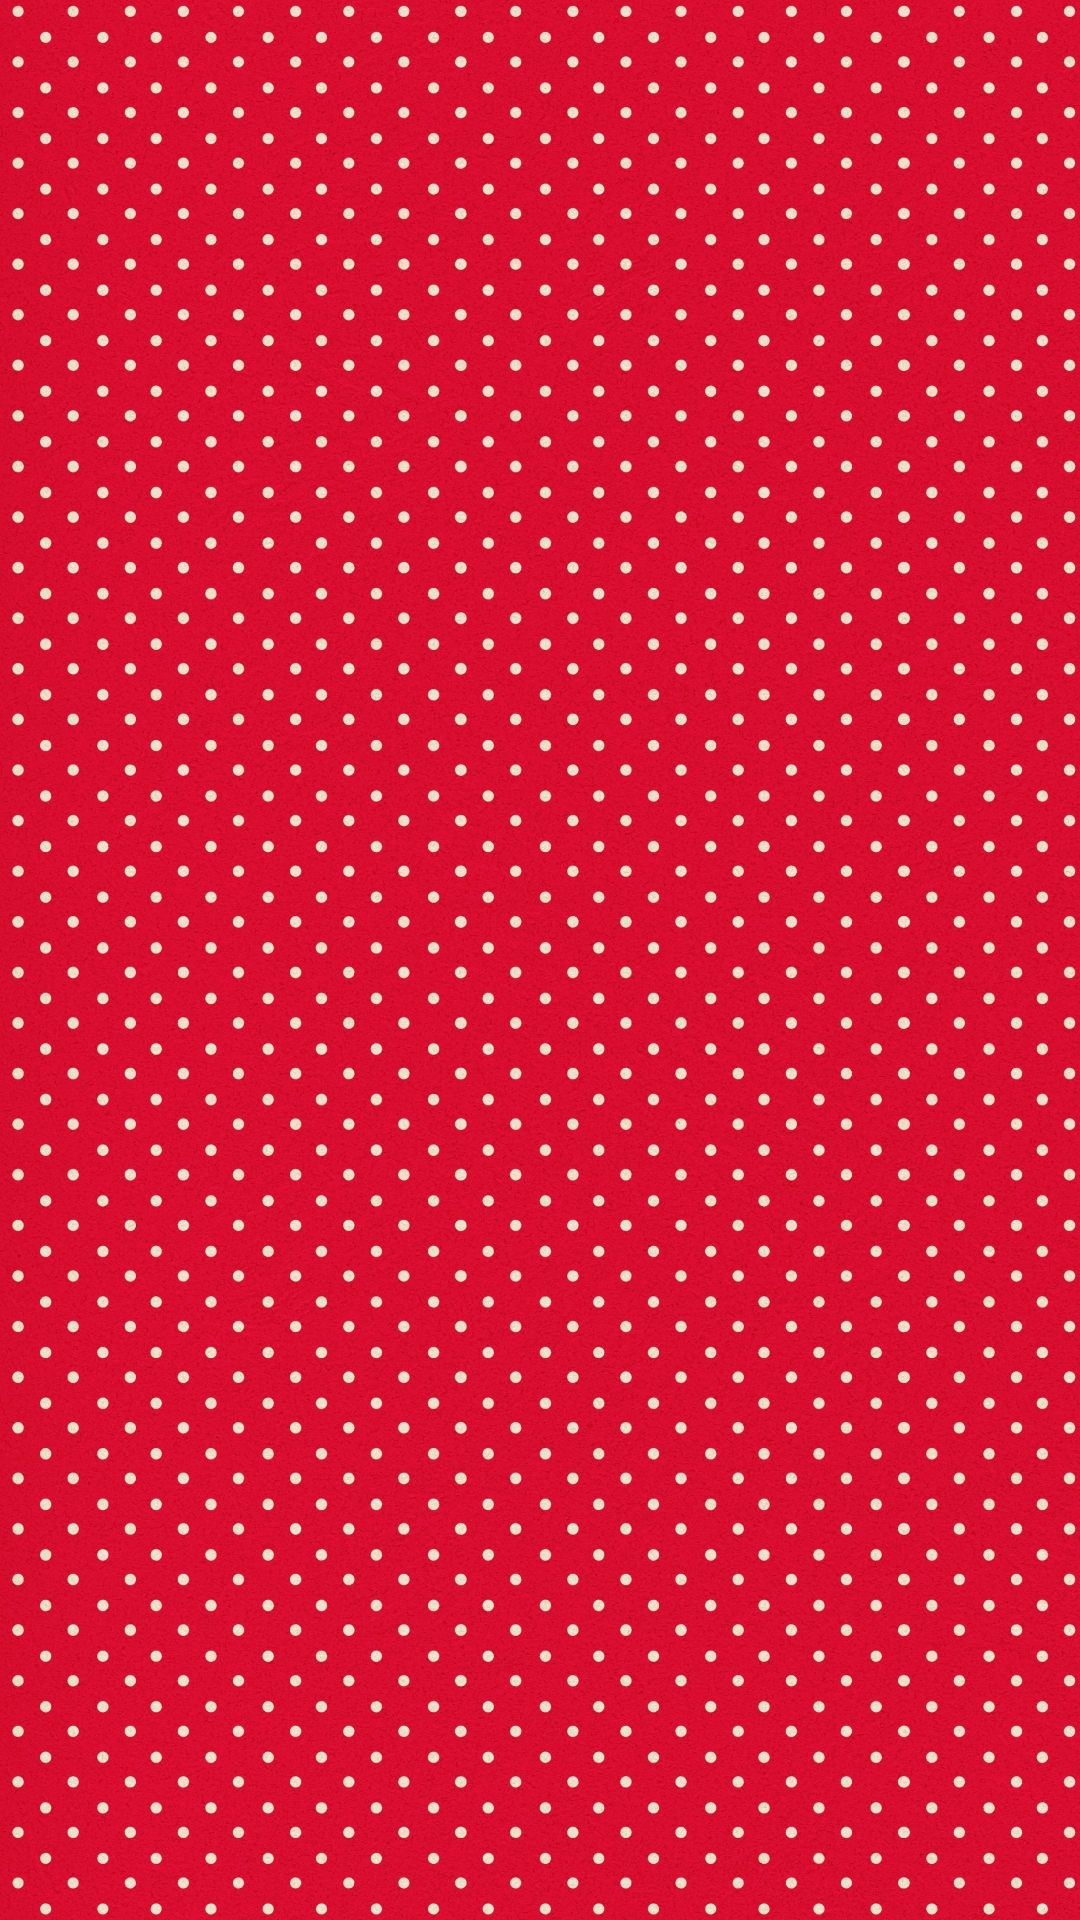 iPhone 6 Plus Wallpaper Red Pattern 05 iPhone 6 Wallpapers 1080x1920